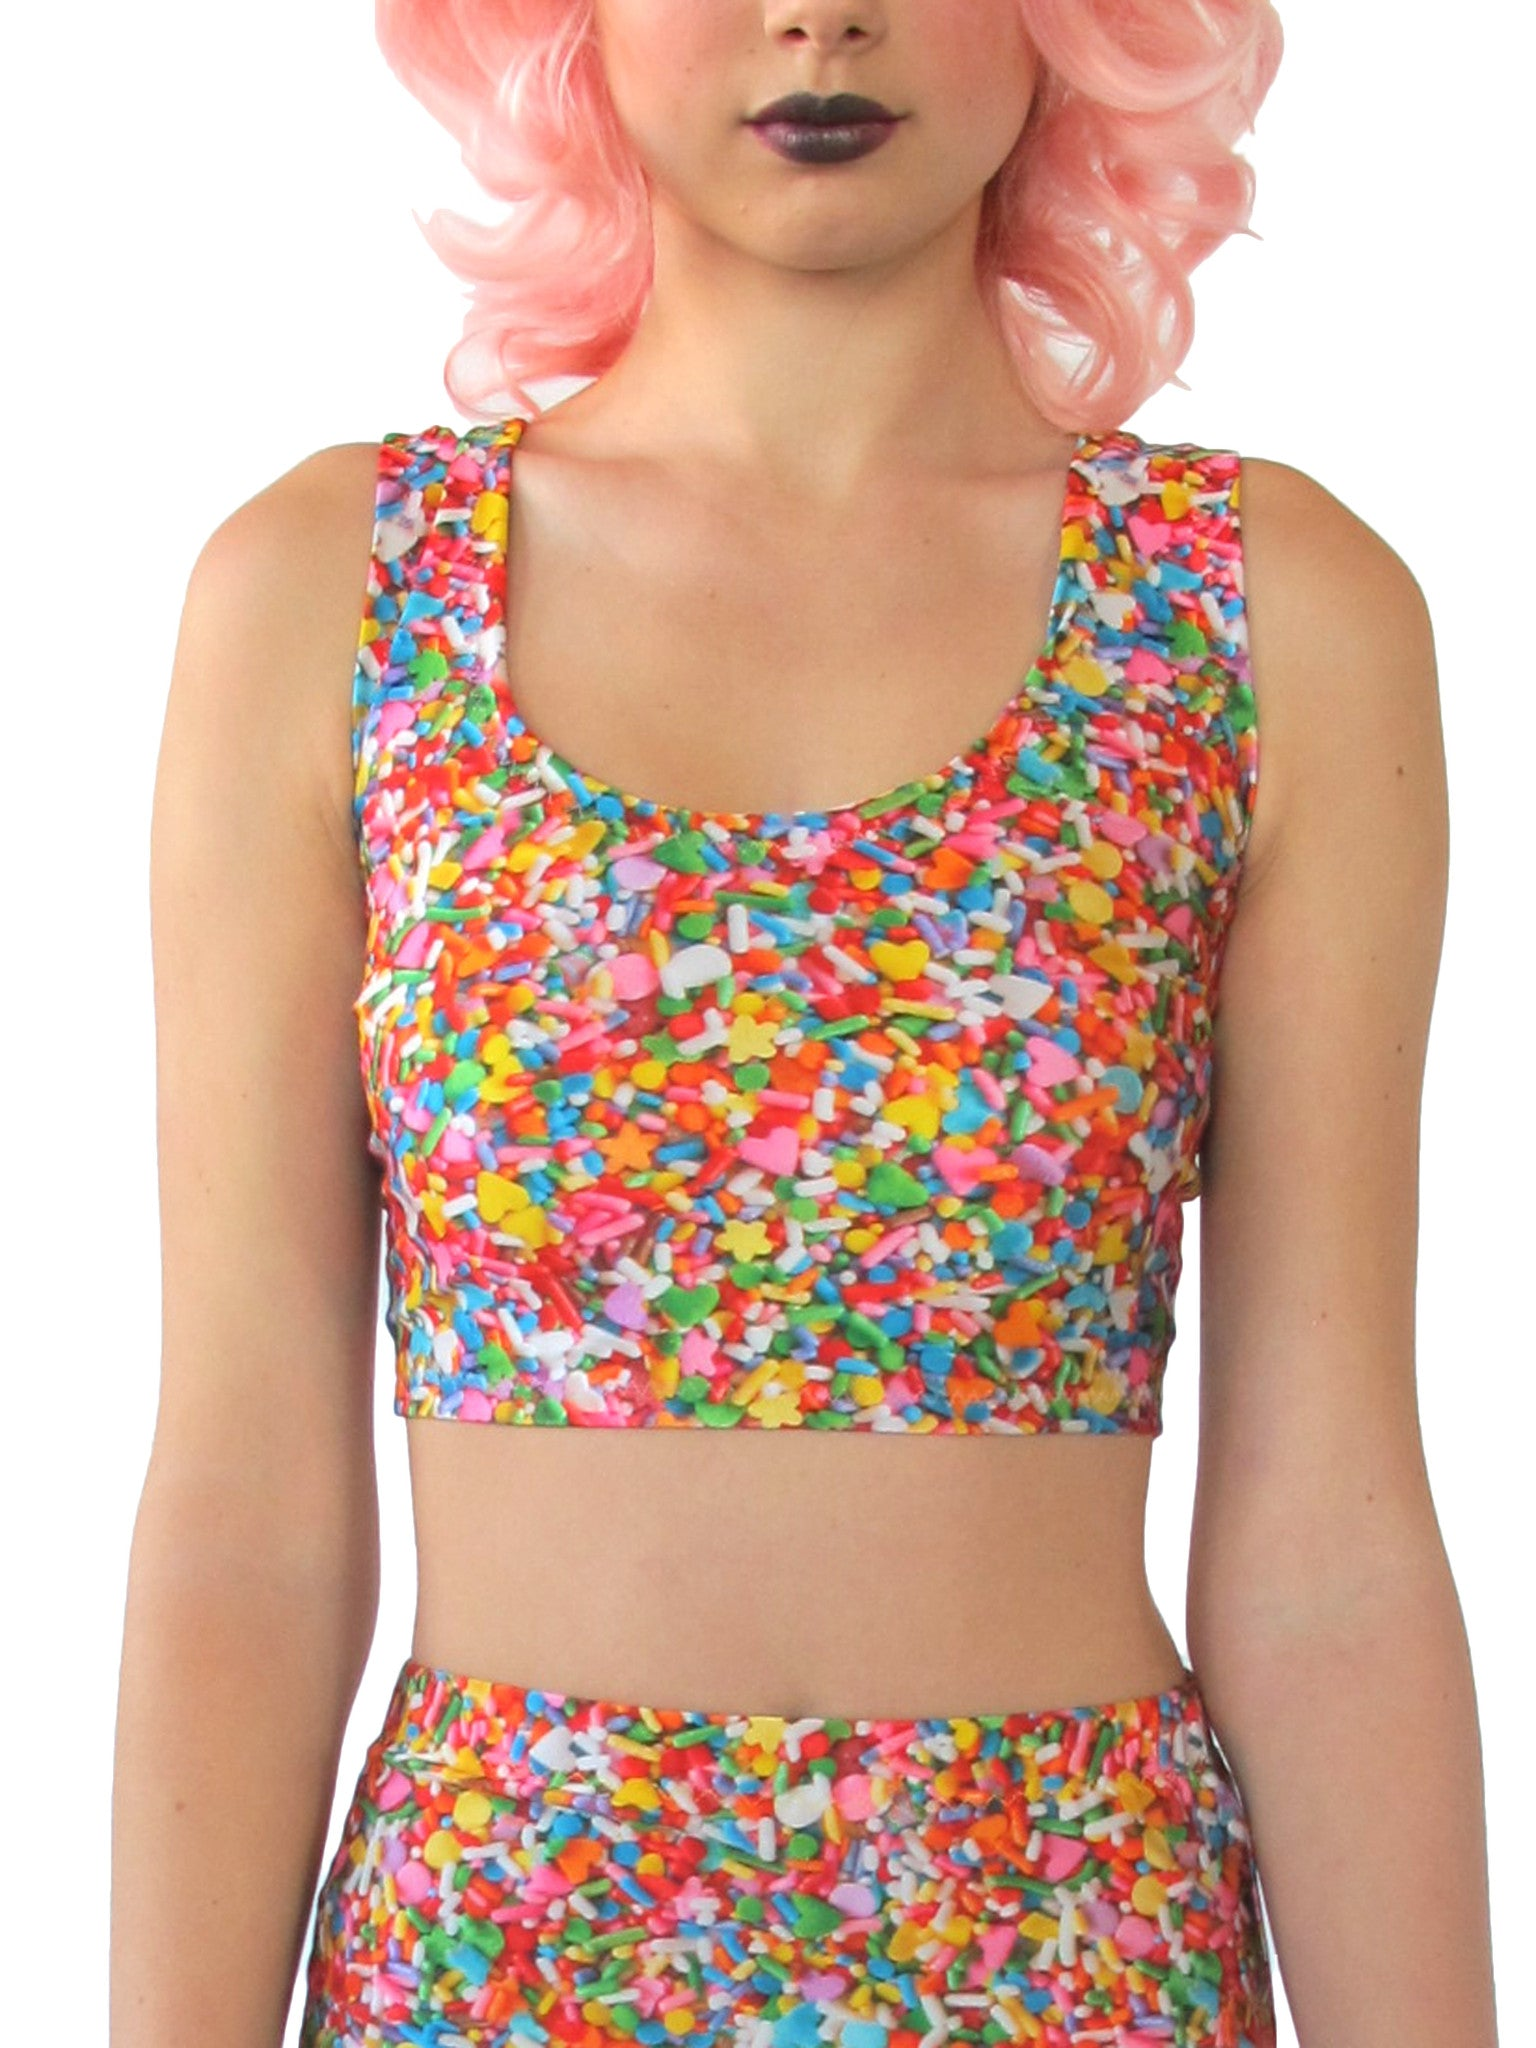 Sprinkles Crop Top